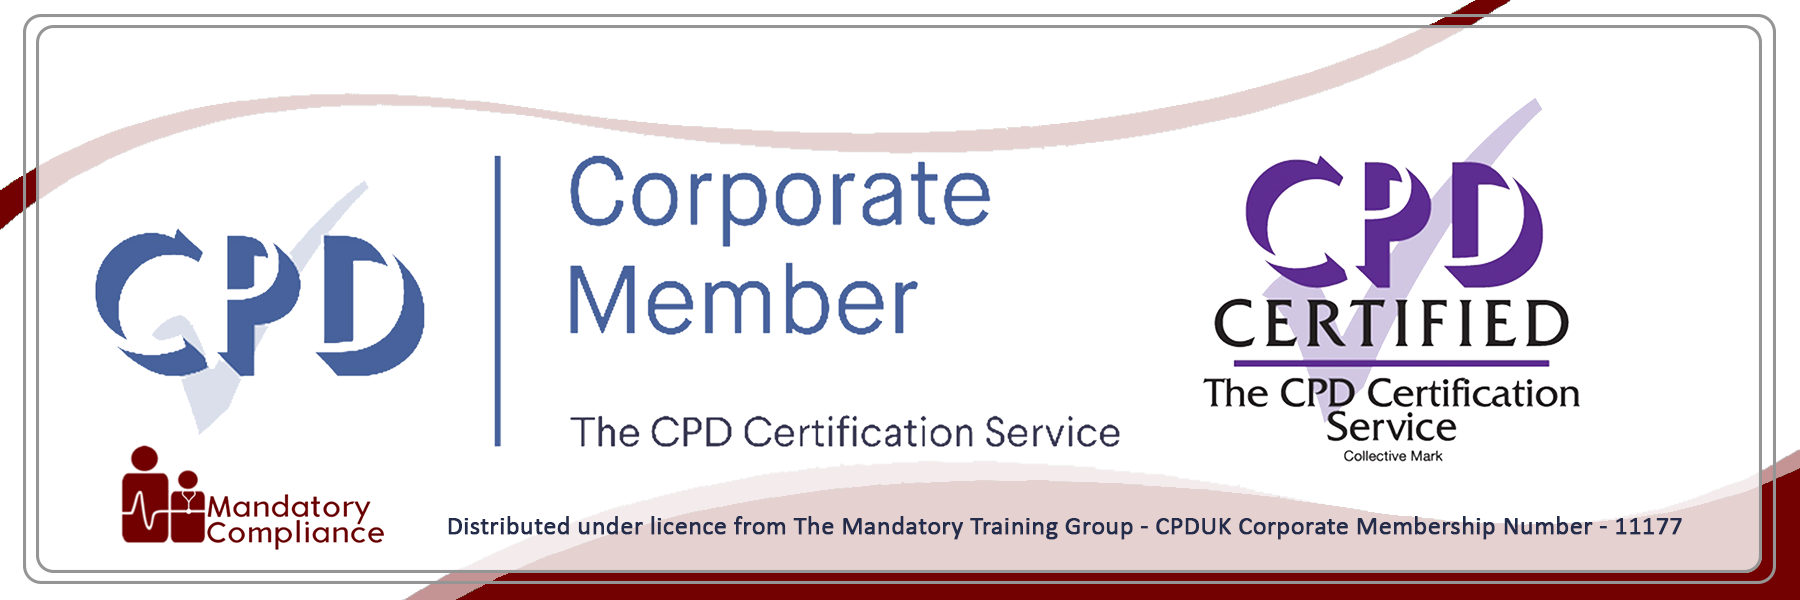 Project Management Training - Online Training Course - CPDUK Accredited - Mandatory Compliance UK -